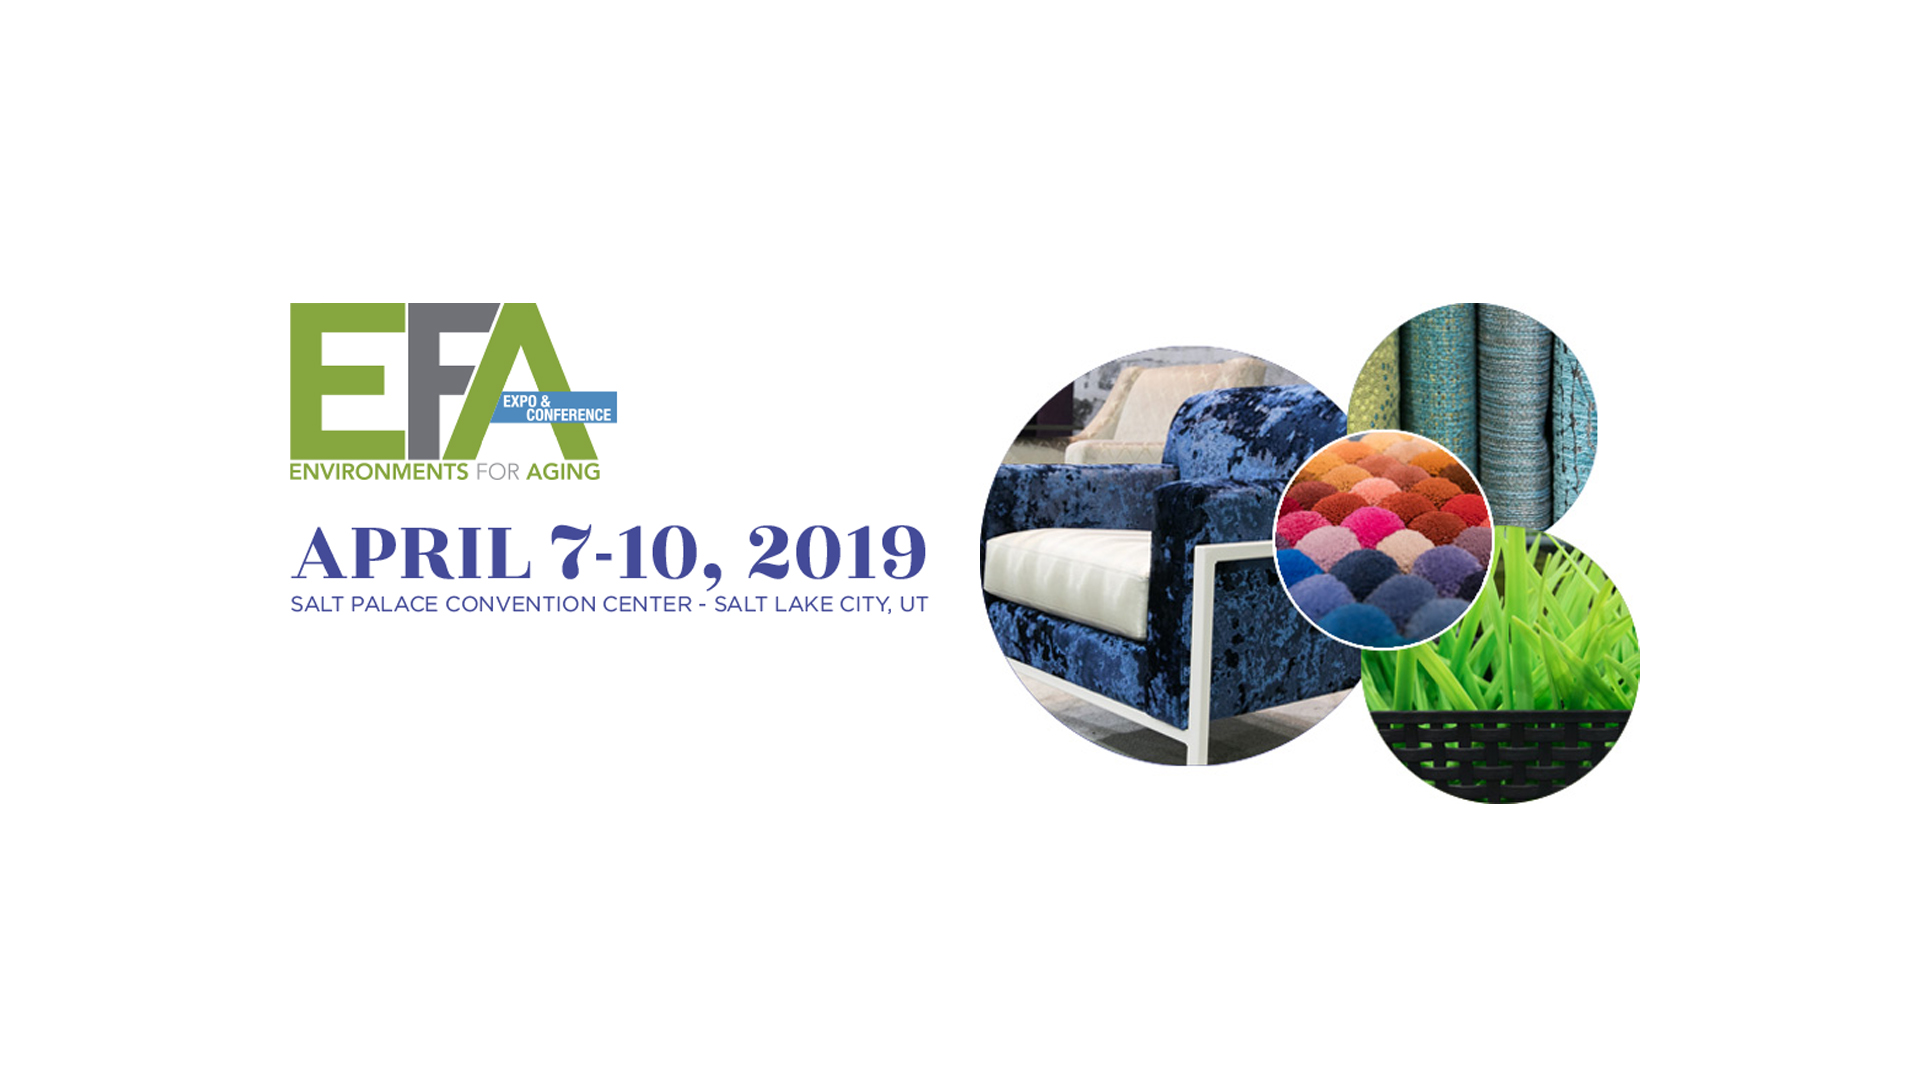 EFA - Environments for Aging 2019, Ponte Giulio Showcase